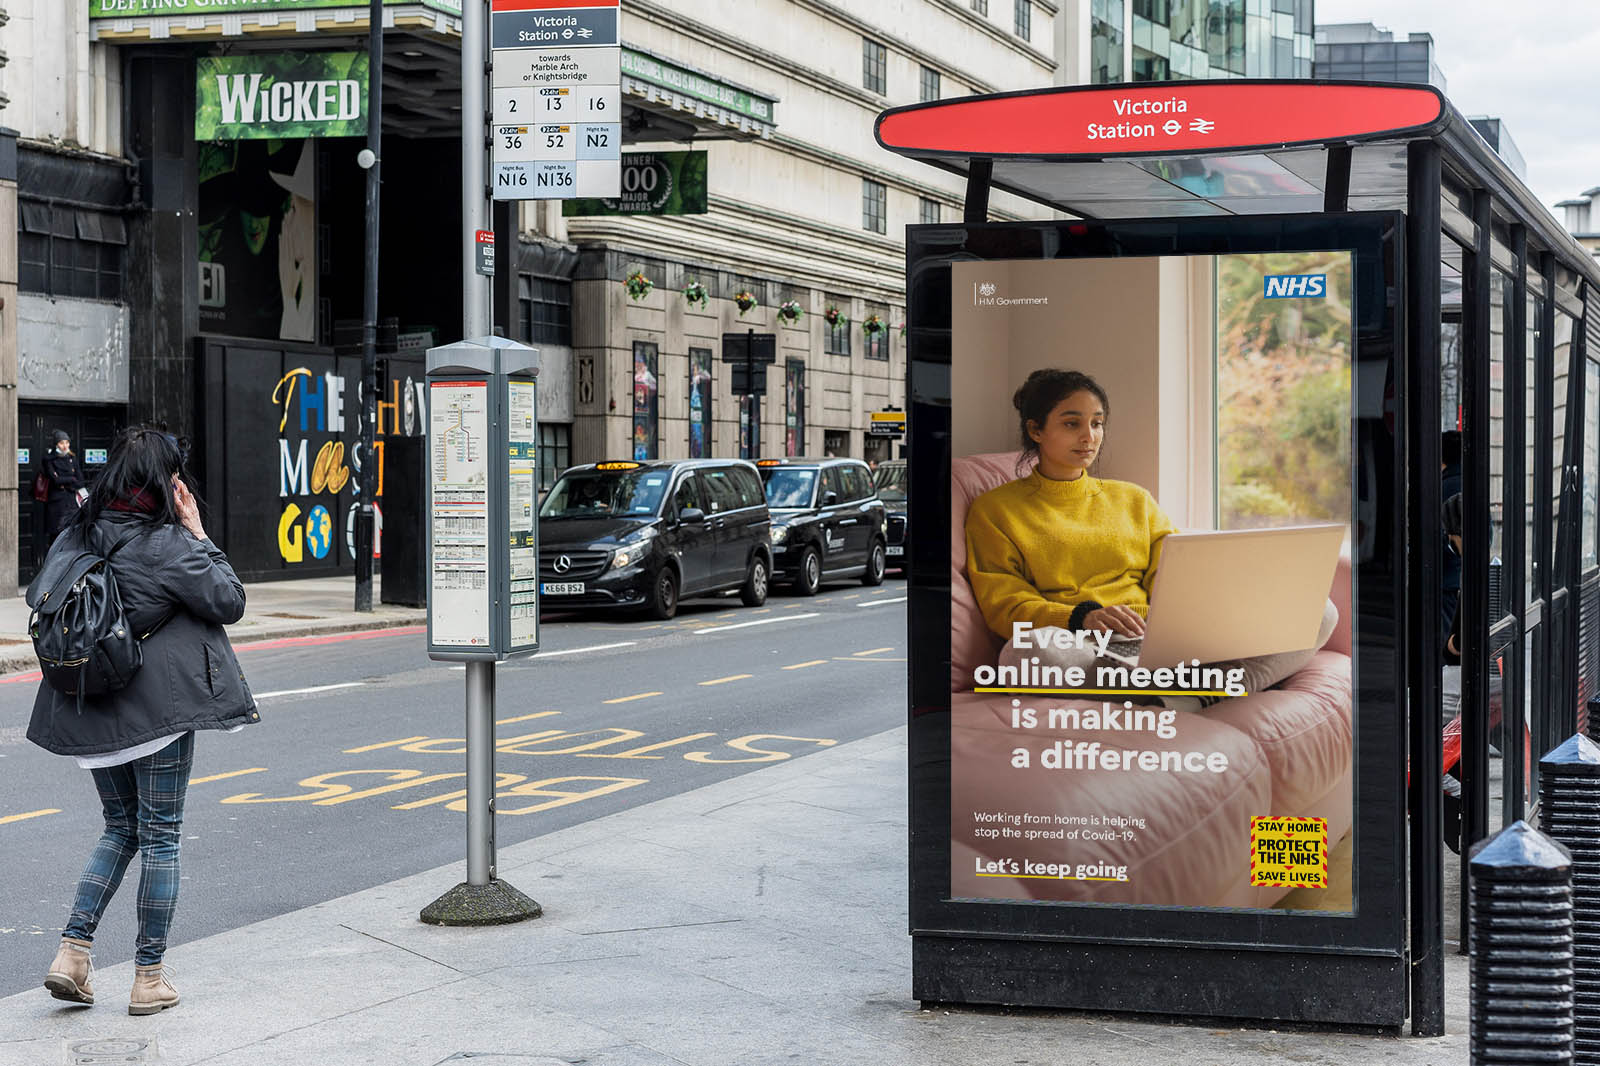 London Street Scene showing advert on busstop from part of the Let's Keep Going NHS and UK government Covid-19 Campaign